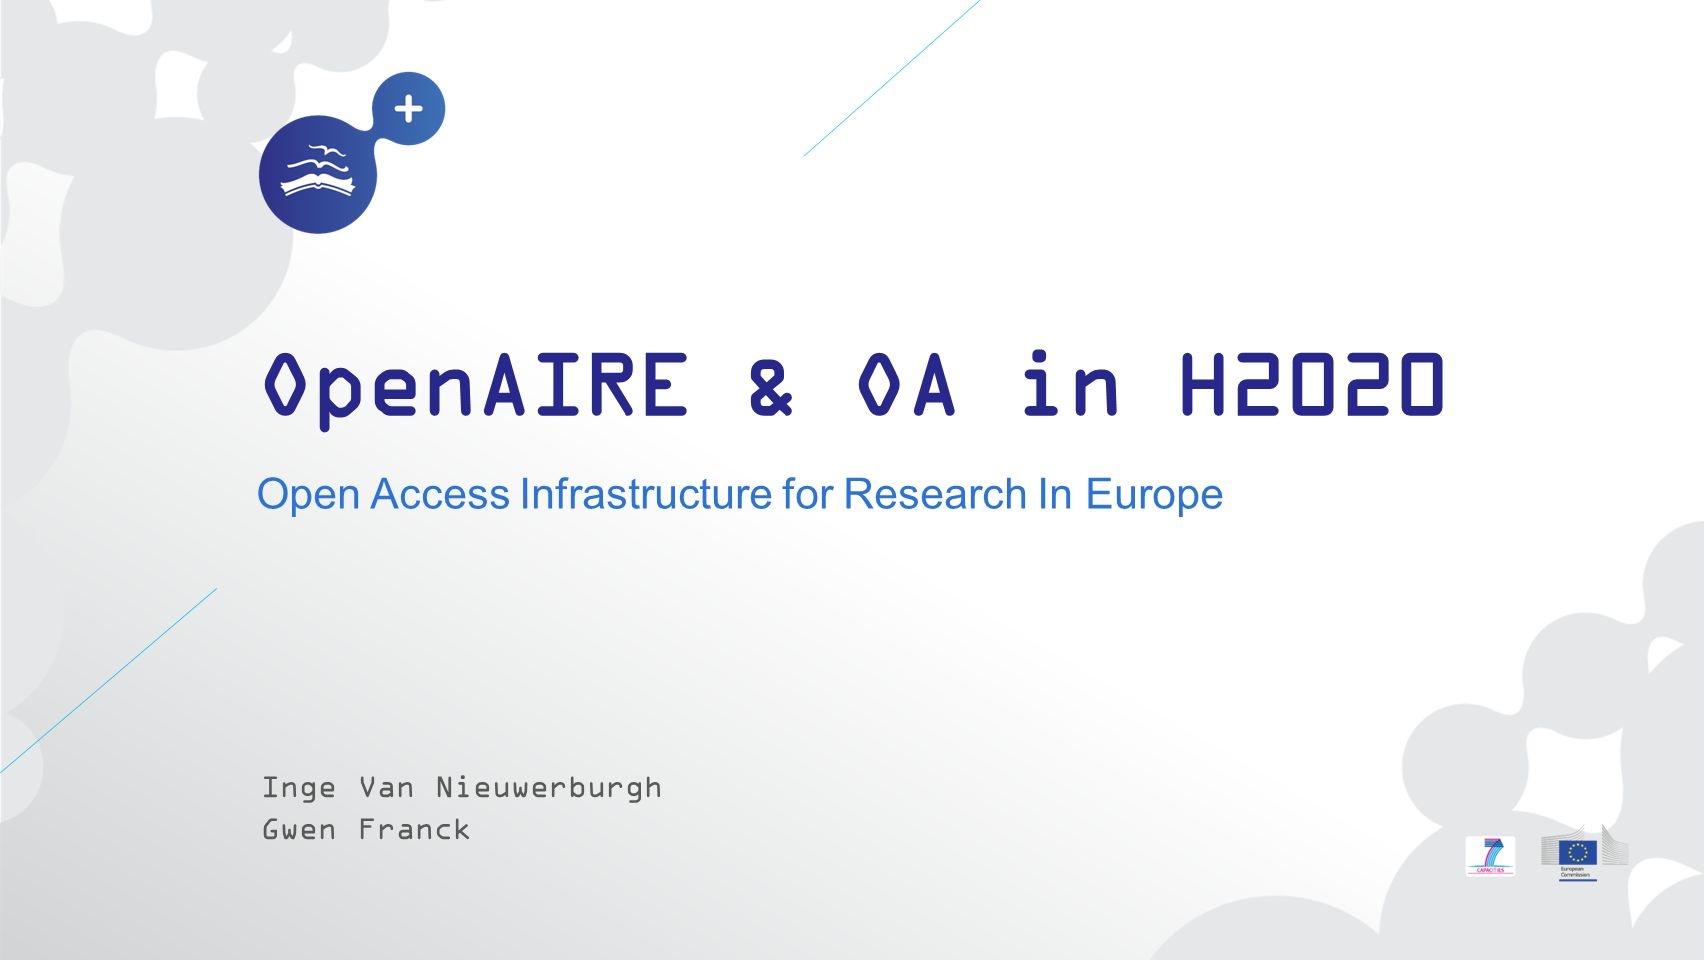 OpenAIRE & OA in H2020 Open Access Infrastructure for Research In Europe.